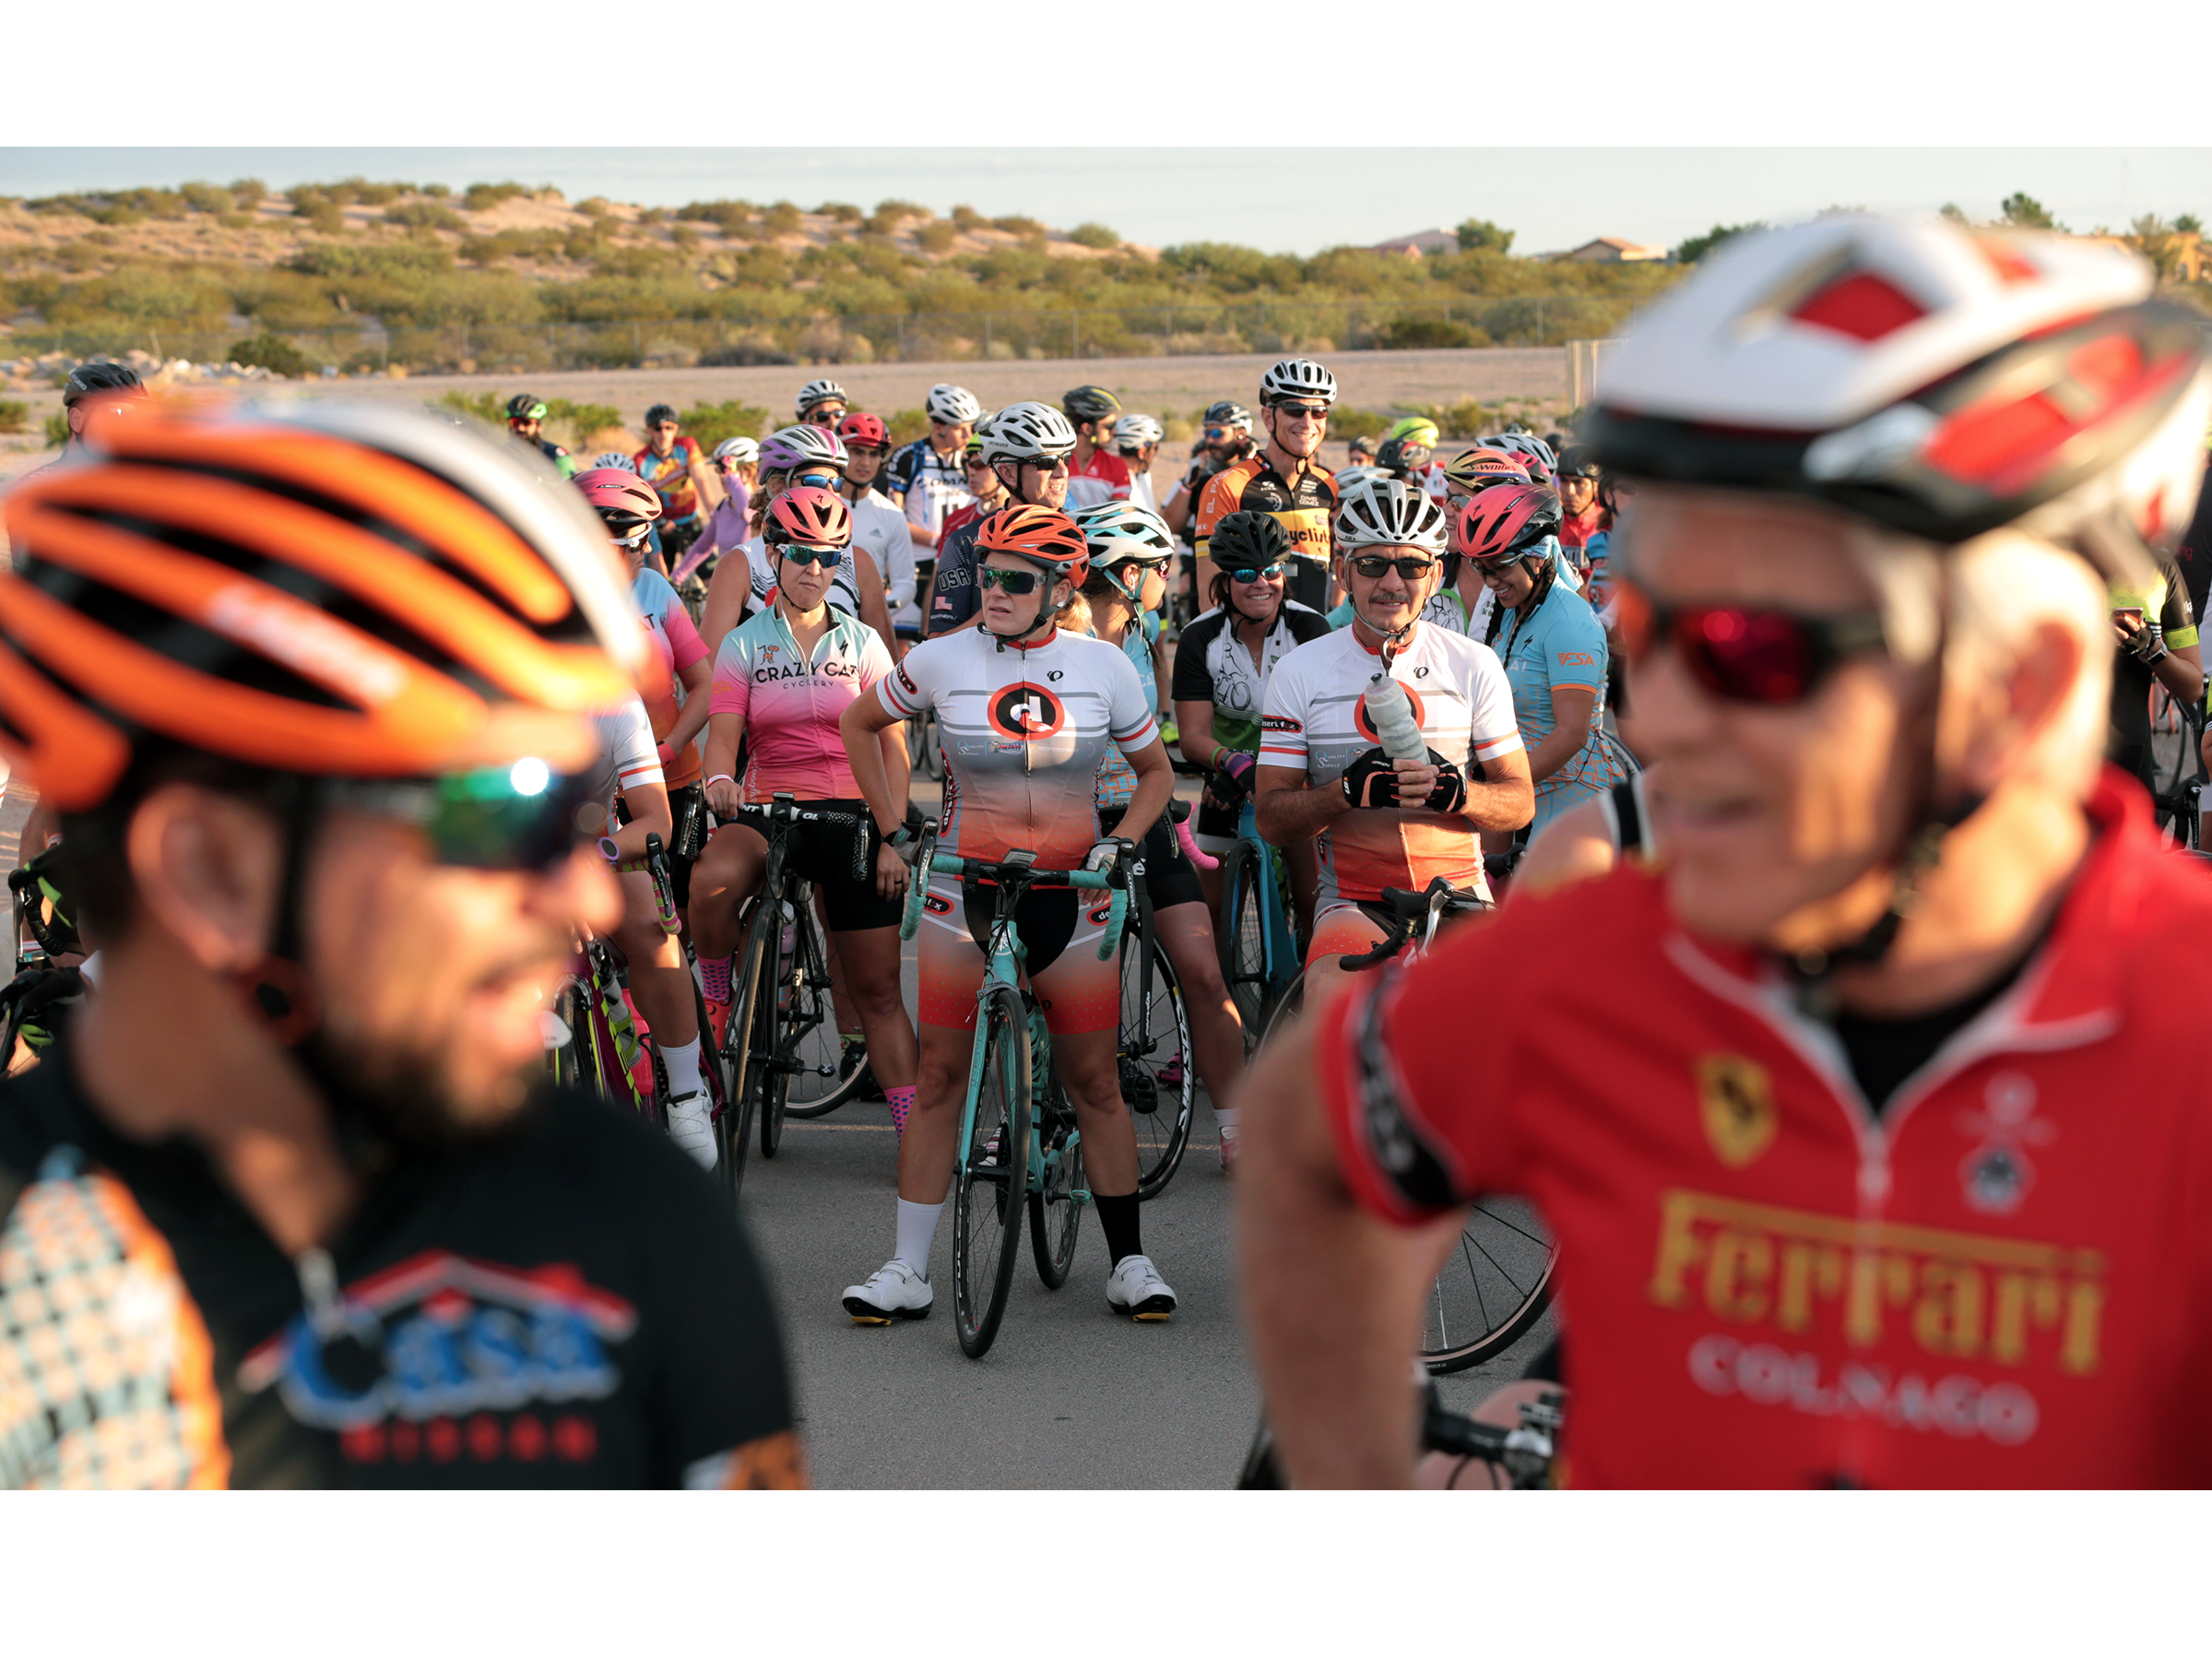 Cyclists competed Sunday morning in the Tour de Tolerance 50k race hosted by the El Paso Holocaust and Study Center. The race weaved through the Rio Grande valley in New Mexico before arriving back at Santa Teresa High School.